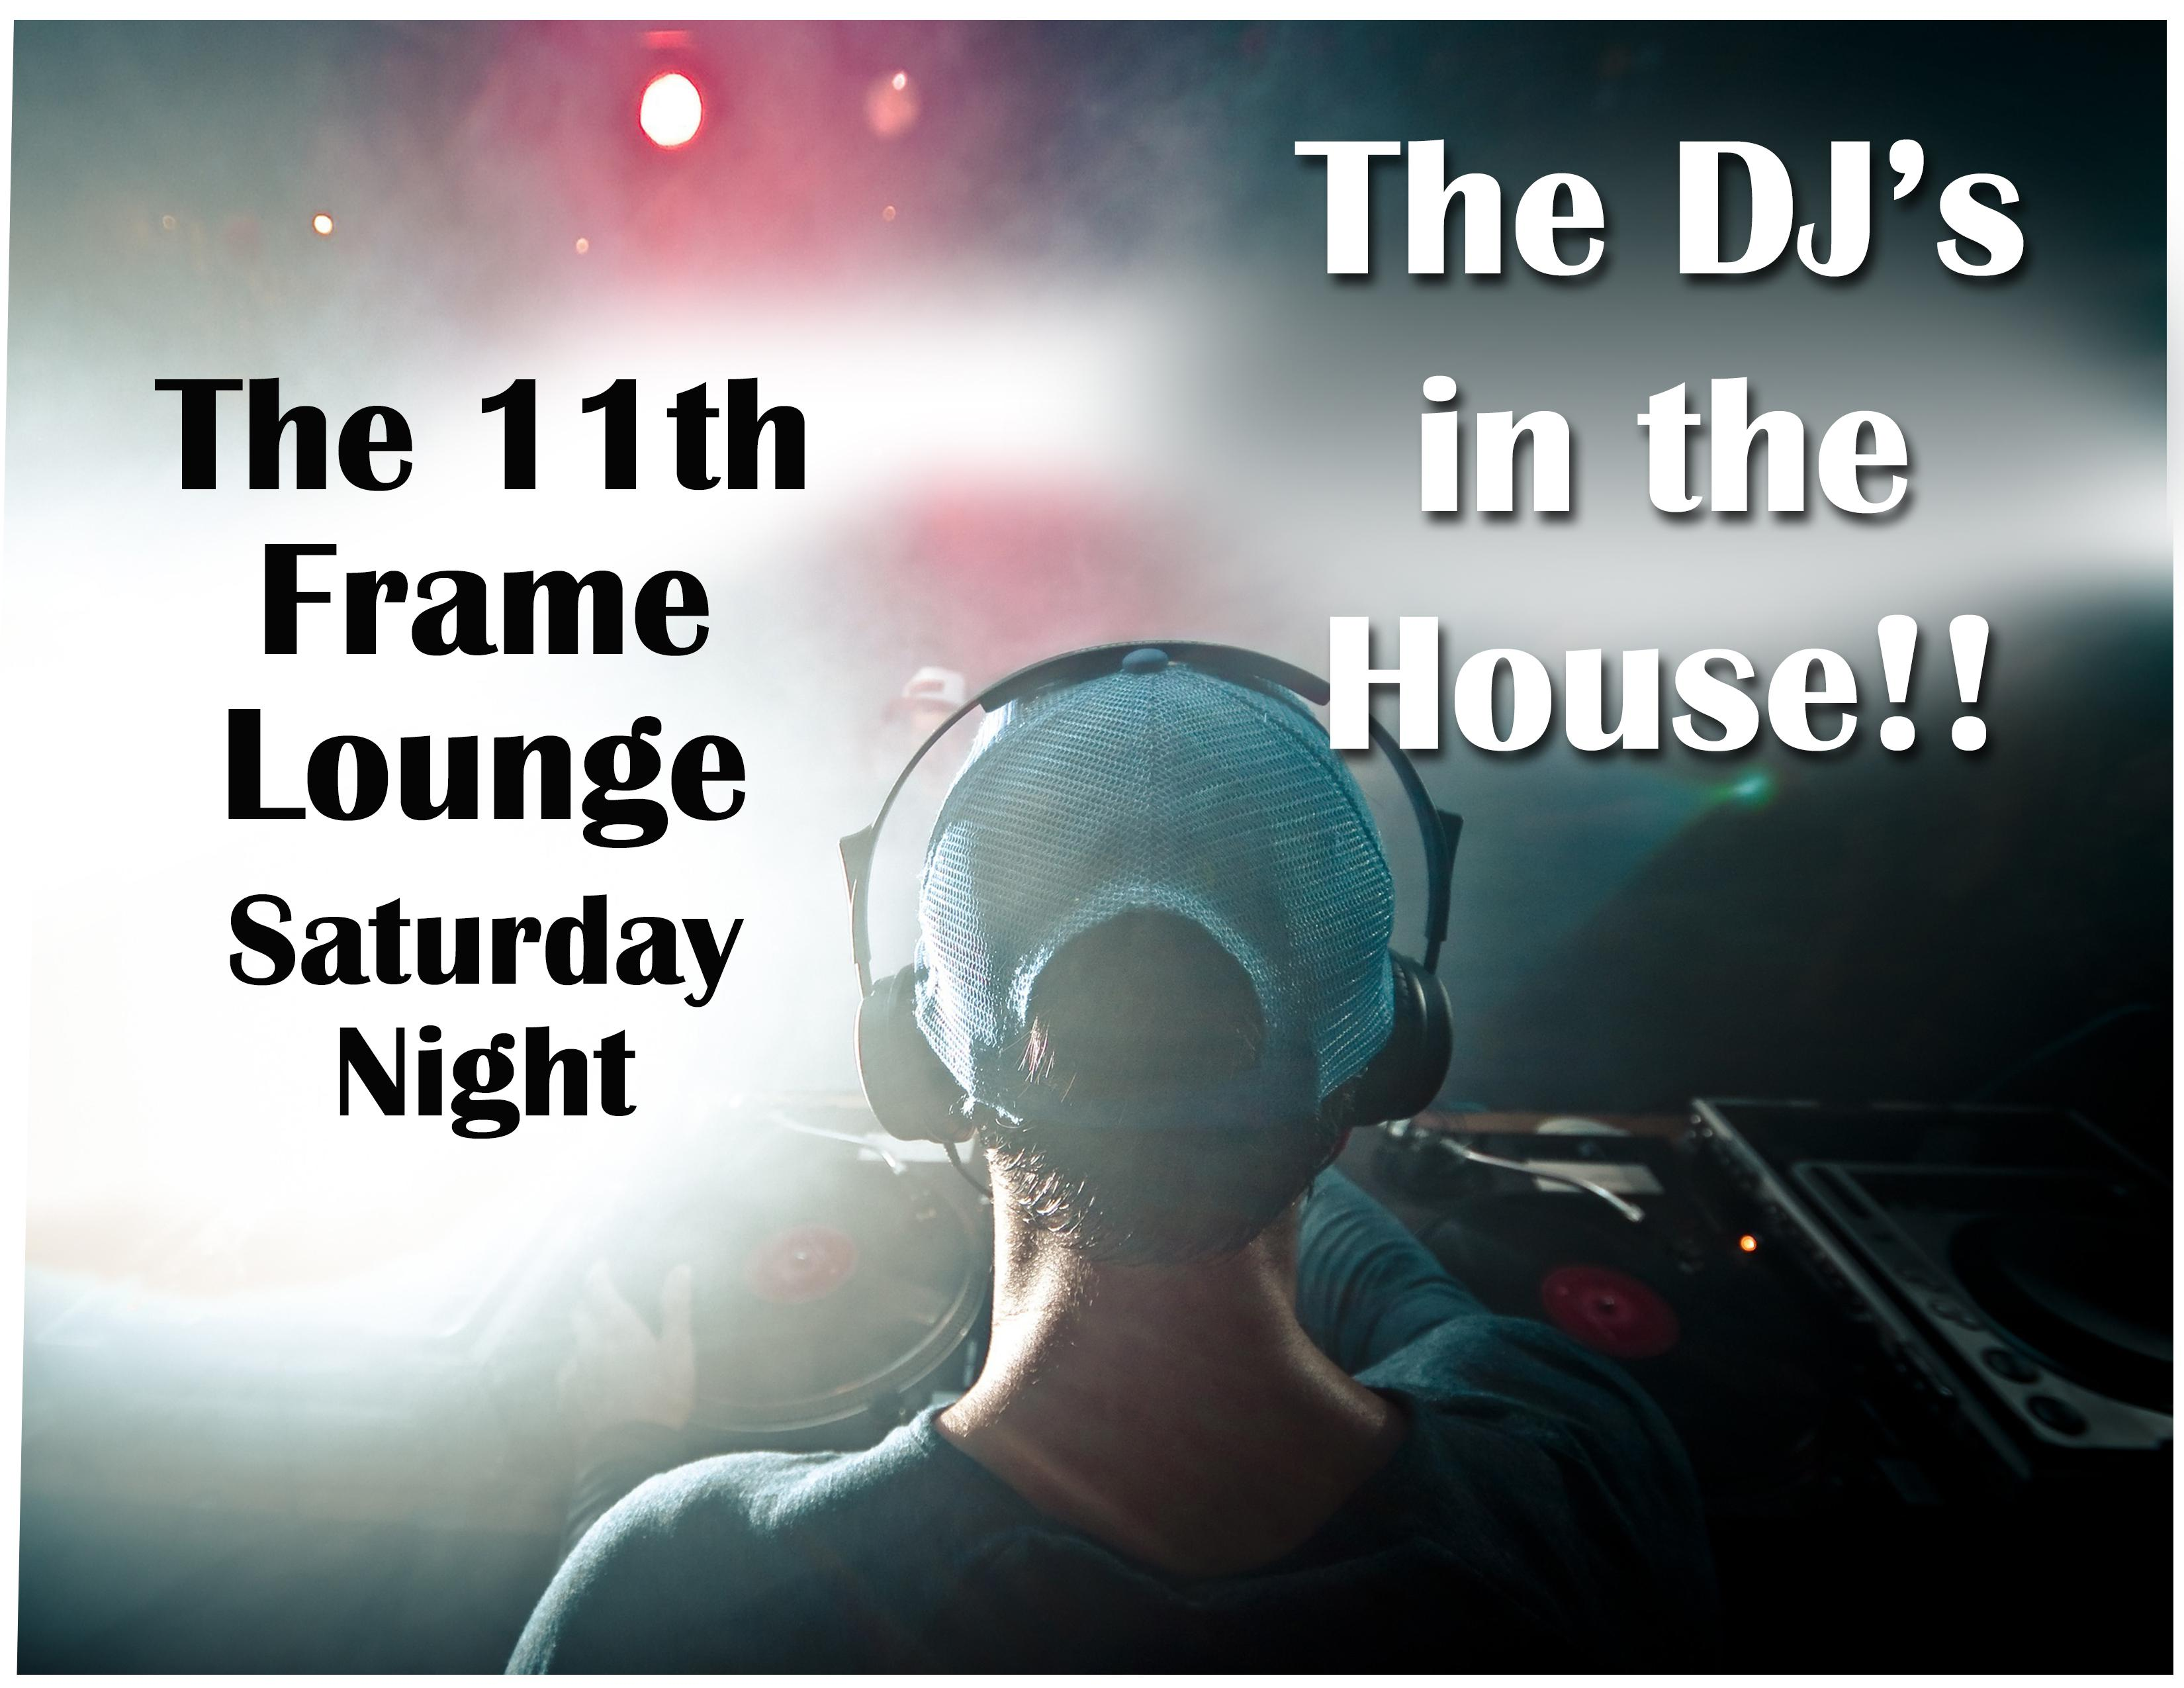 Our own DJ – Live in The 11th Frame Lounge